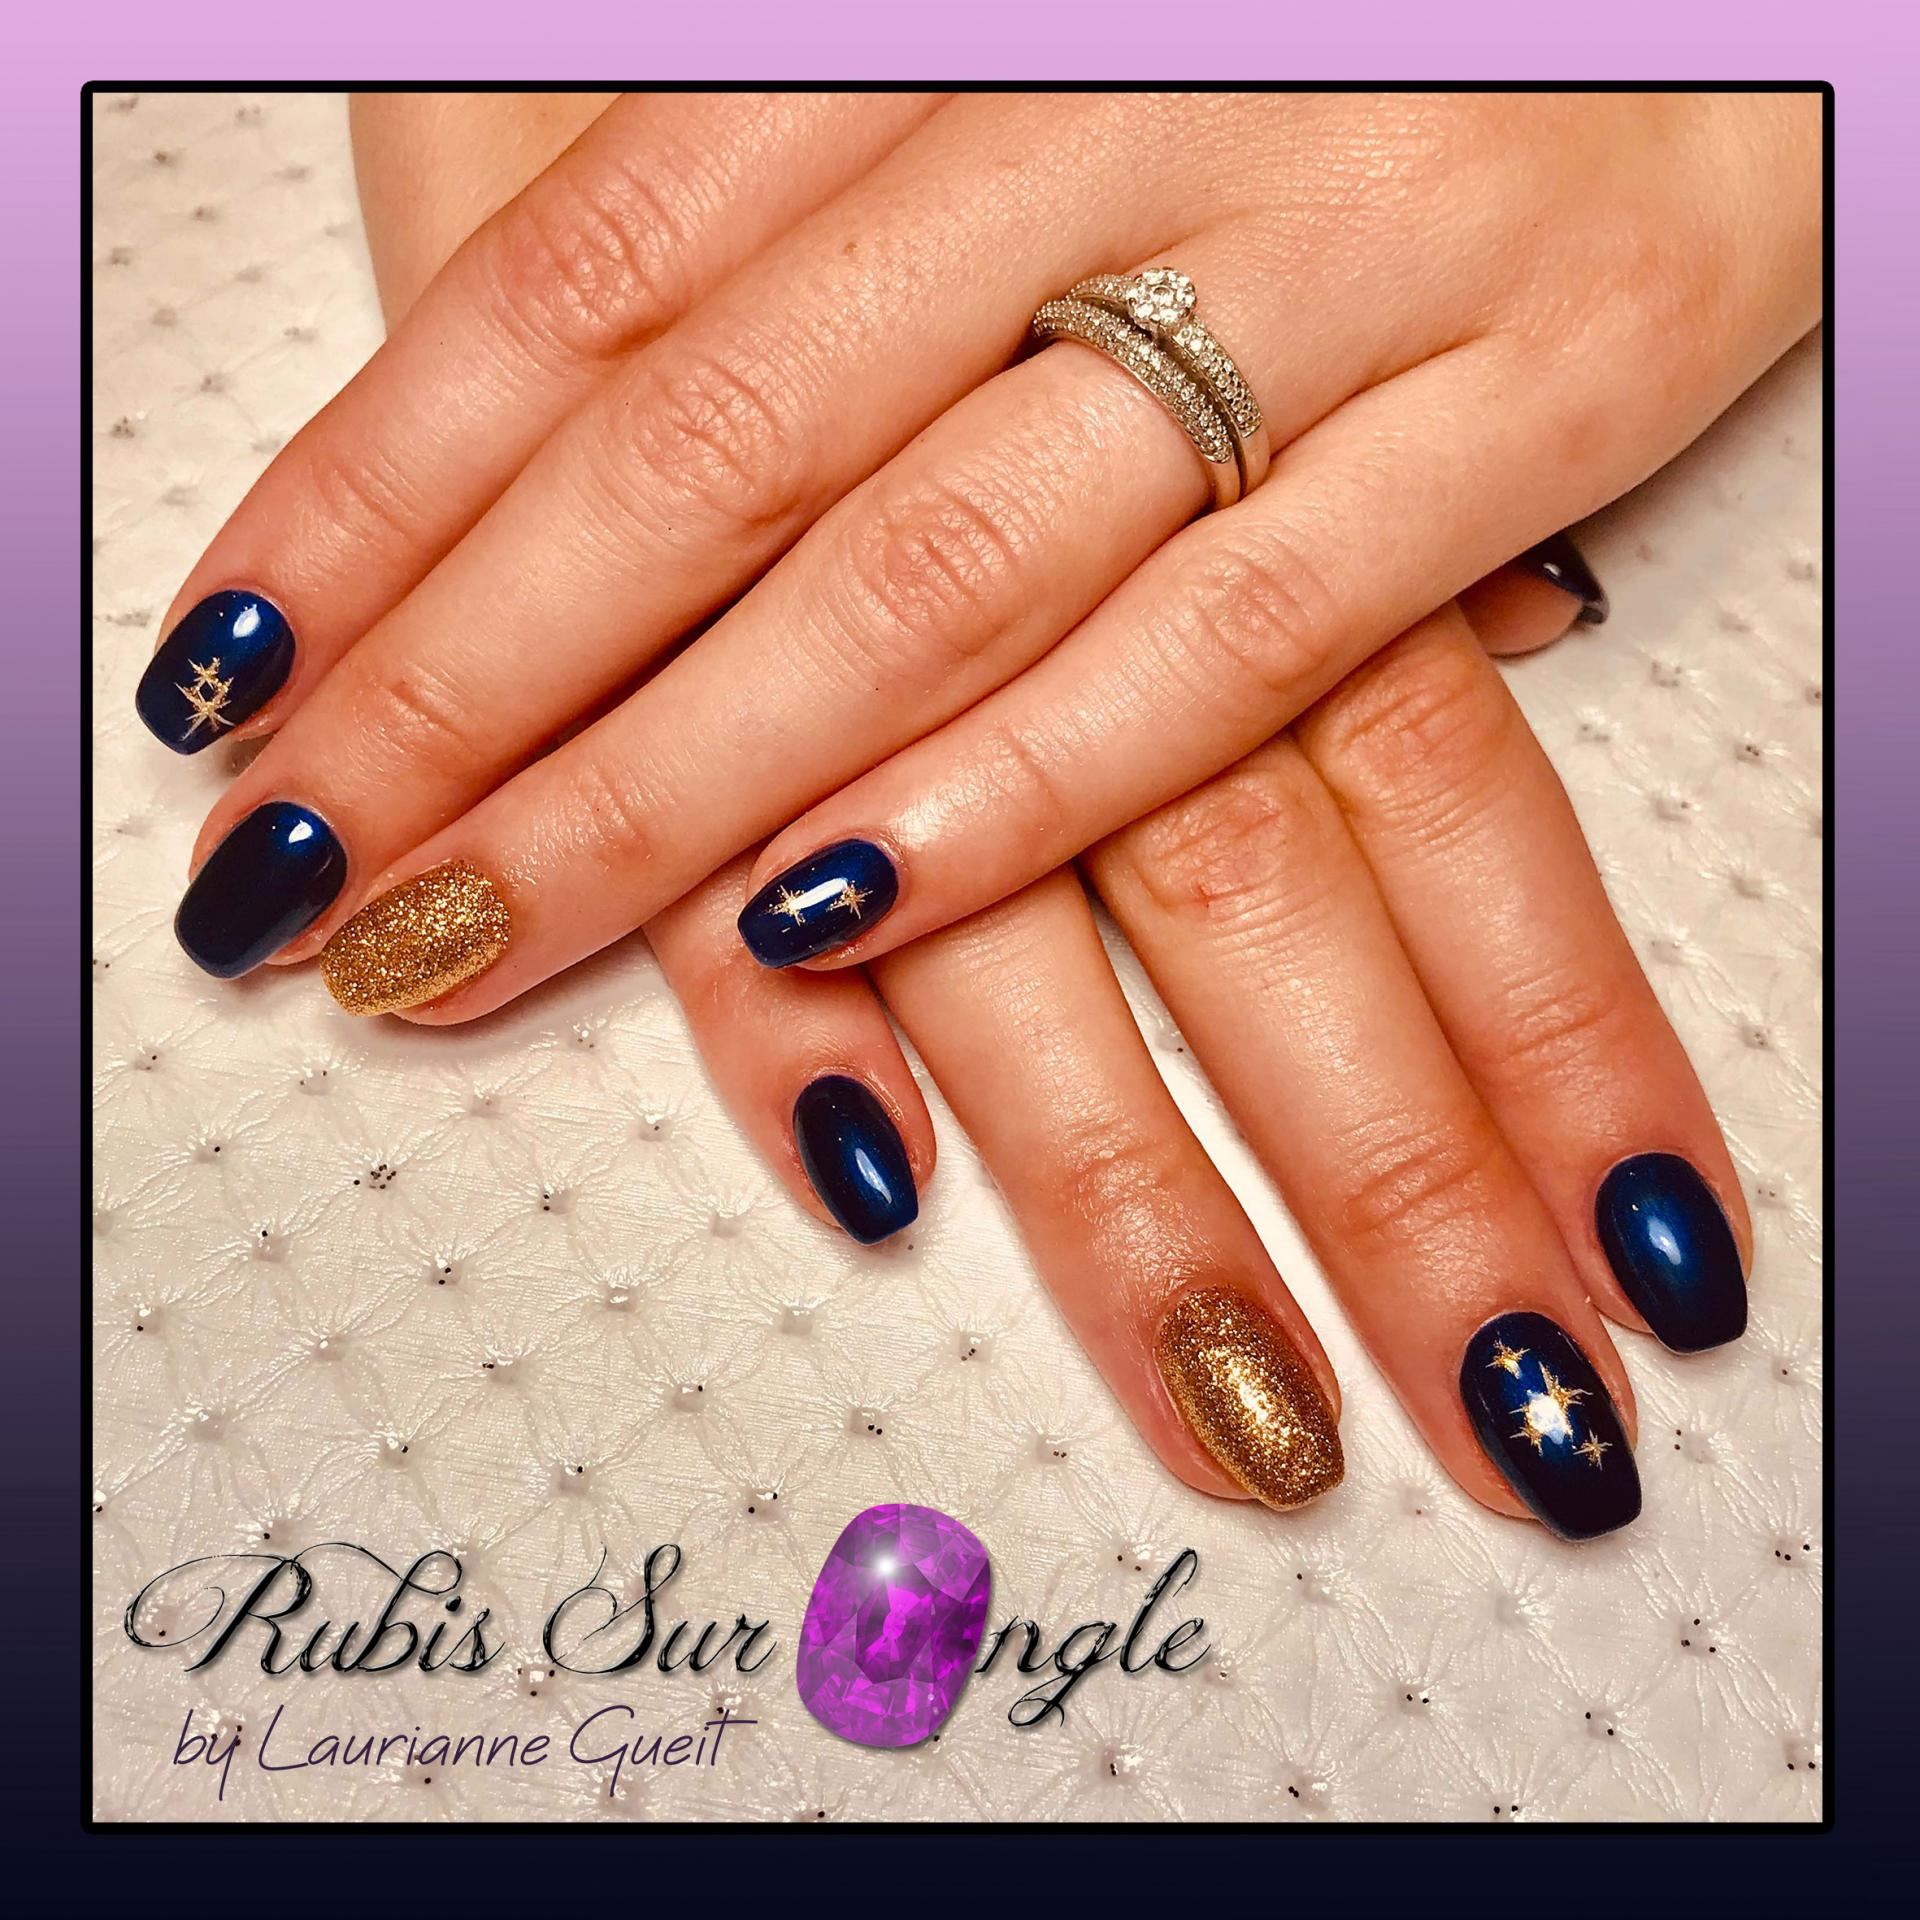 Rubis_sur_ongle